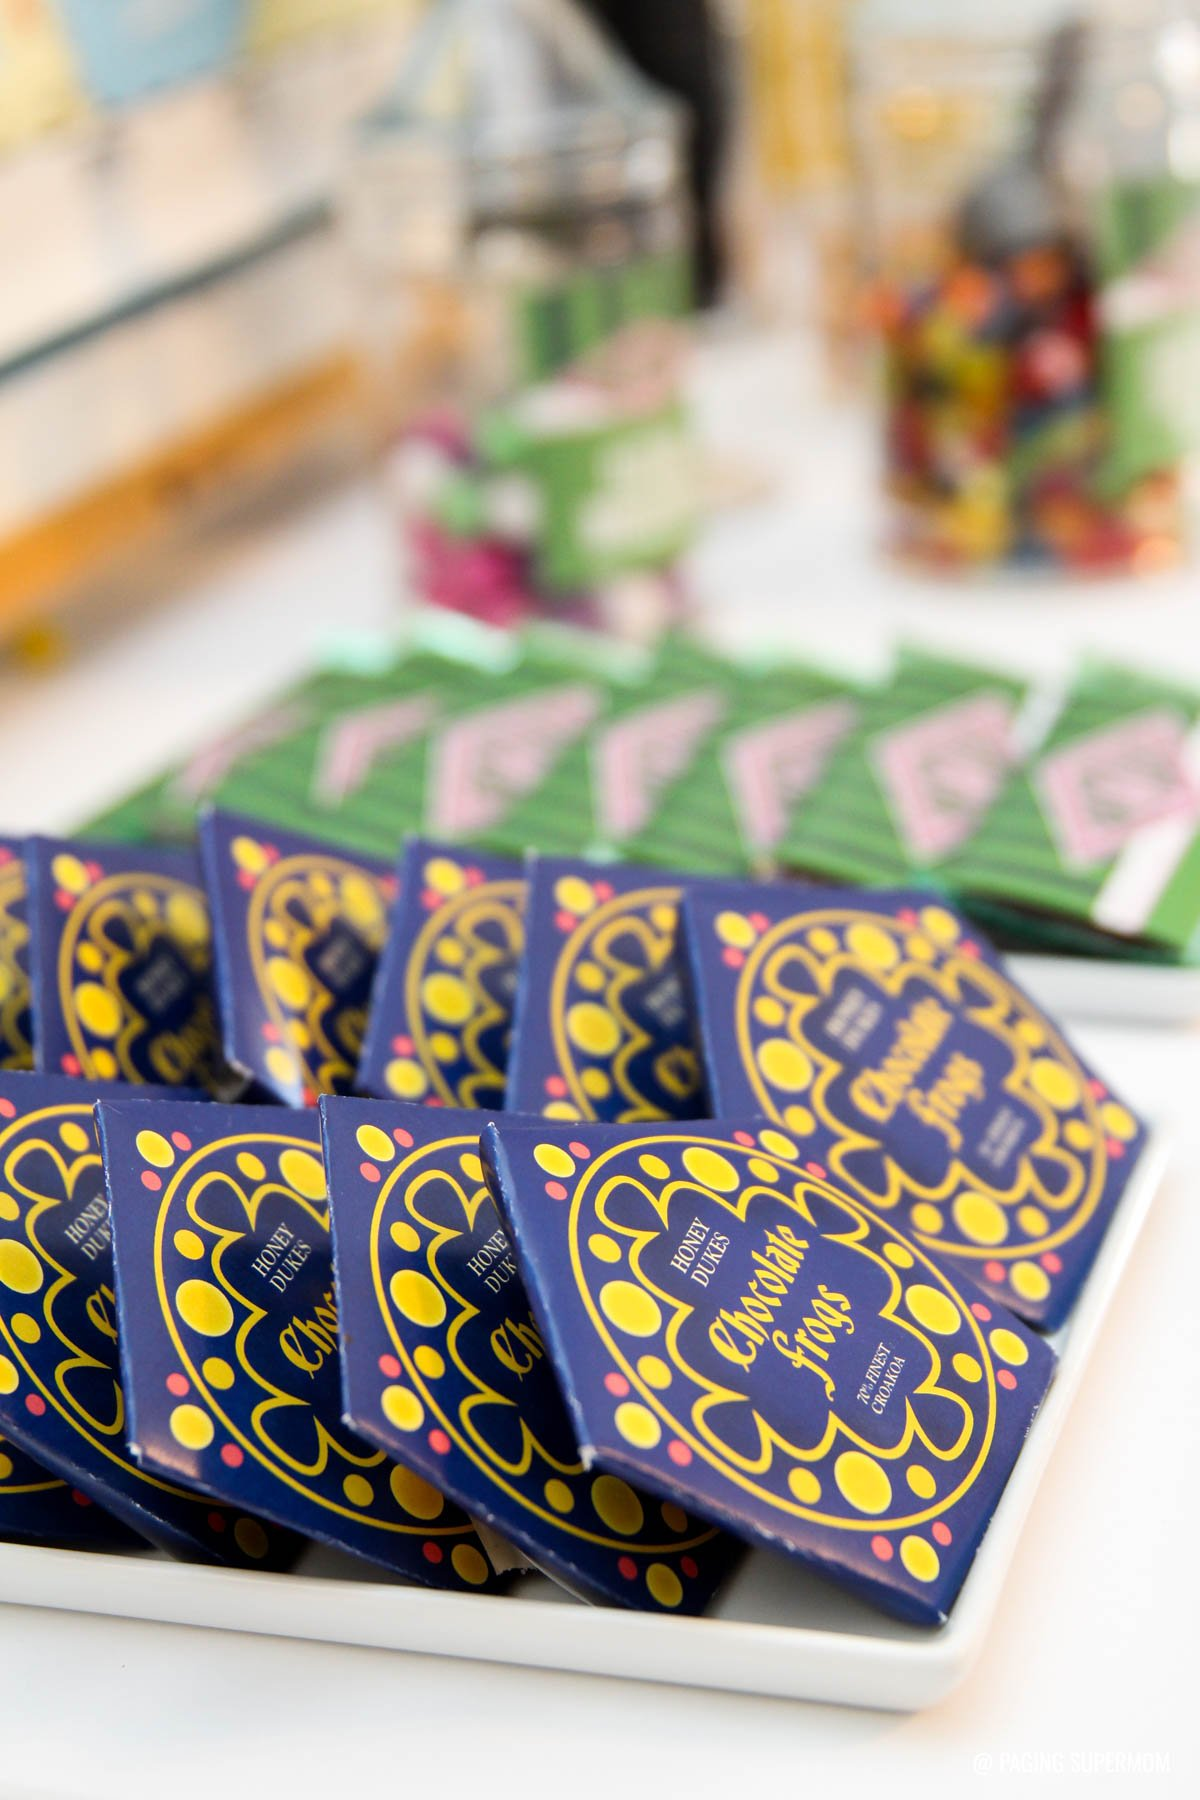 Harry Potter Honeydukes Chocolate Frogs - get the free printable Chocolate Frogs package template @PagingSupermom